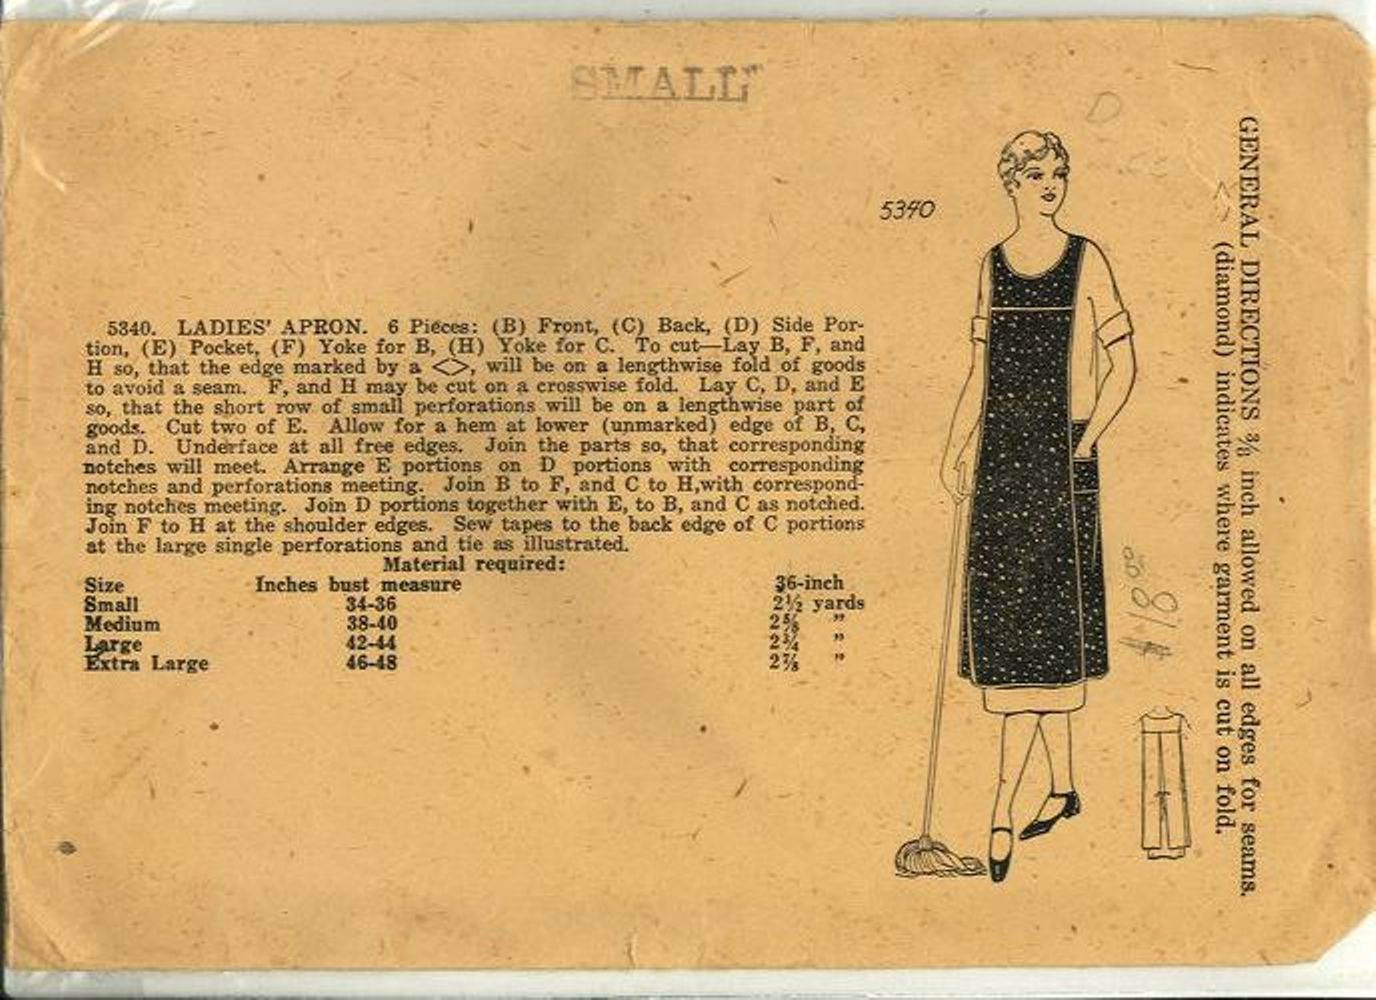 Nelly Don apron pattern